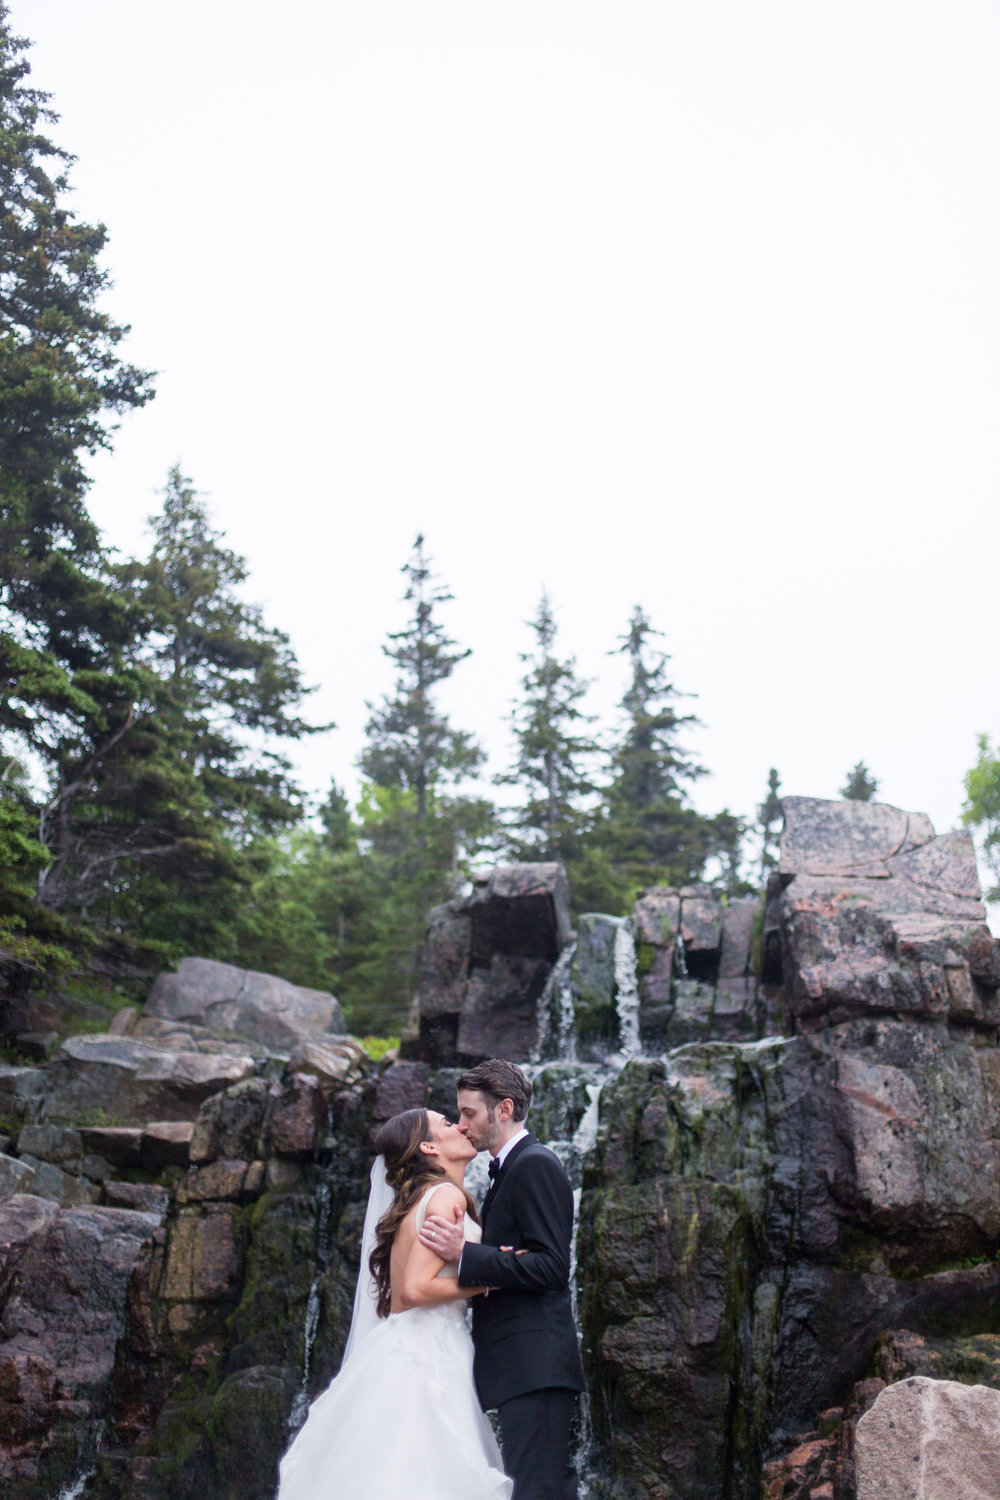 475-halifax-waterfall-wedding--.jpg